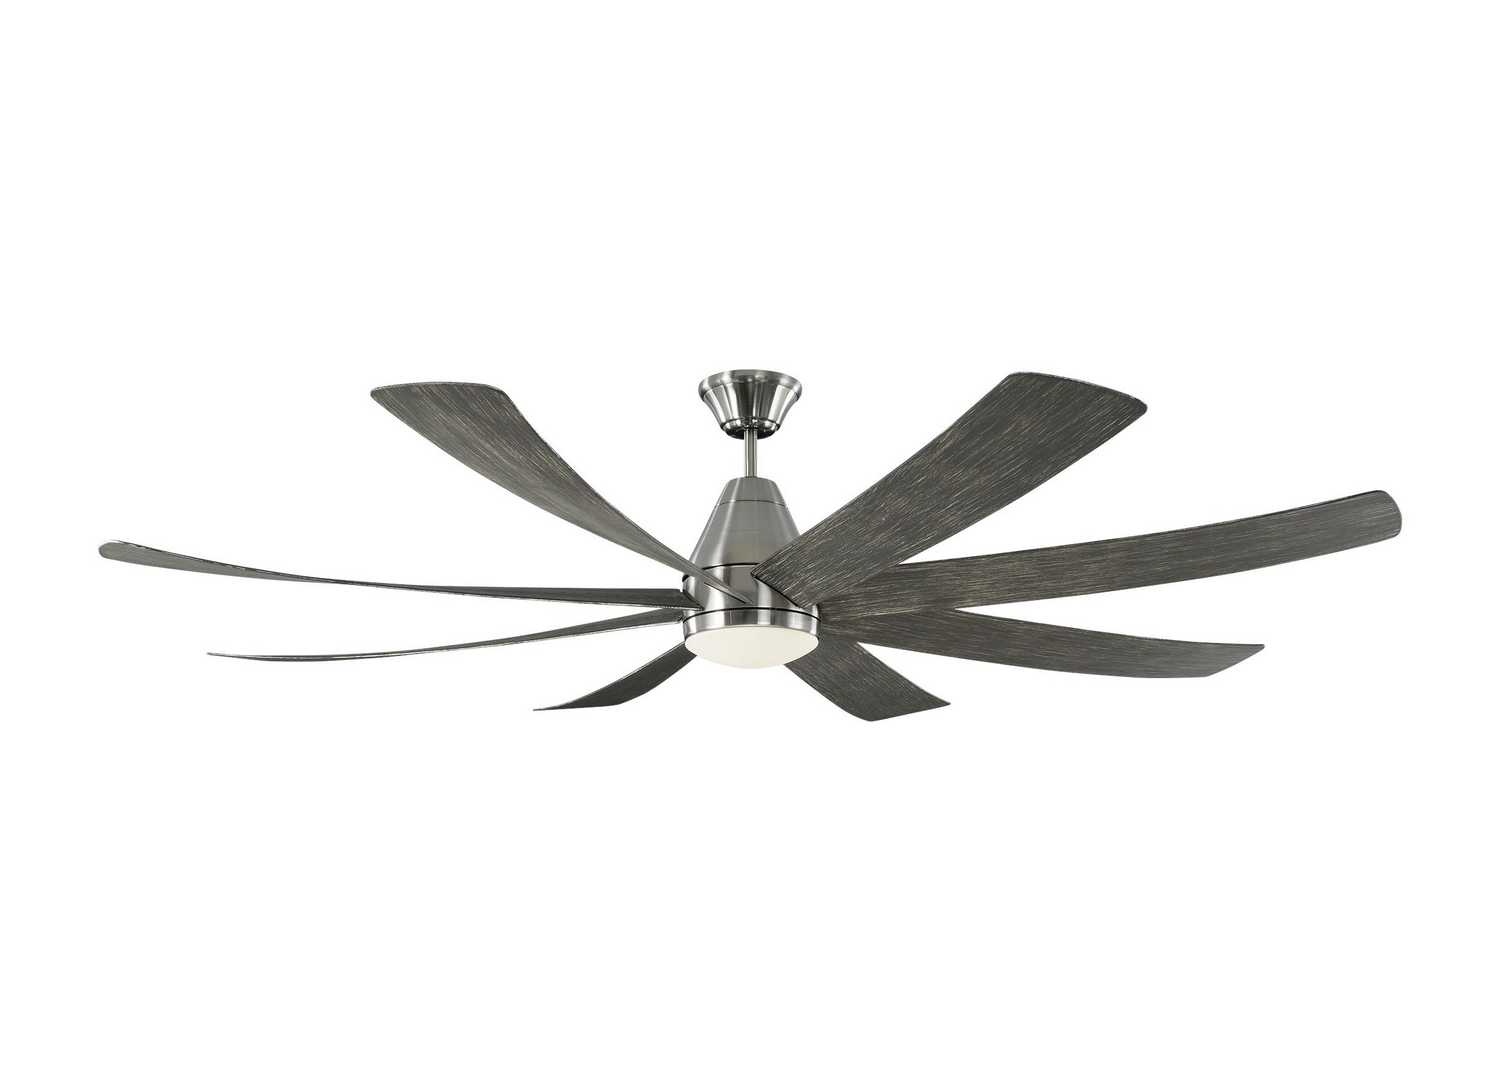 72 inchCeiling Fan from the Kingston collection by Monte Carlo 8KGR72BSLGWOD